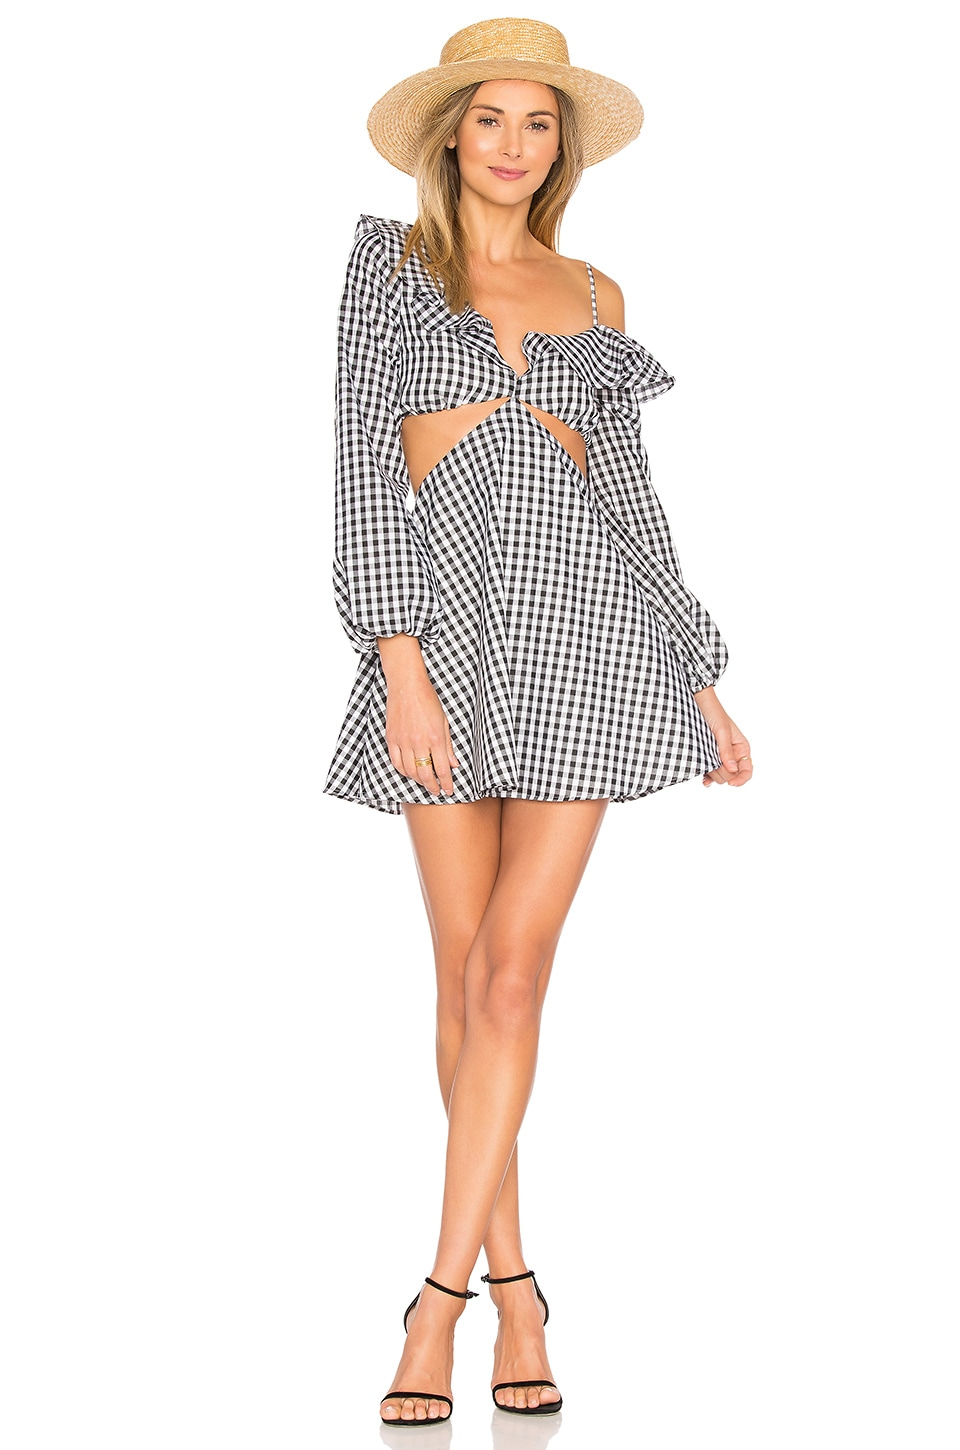 Lovers + Friends x REVOLVE Love Bliss Mini in Gingham